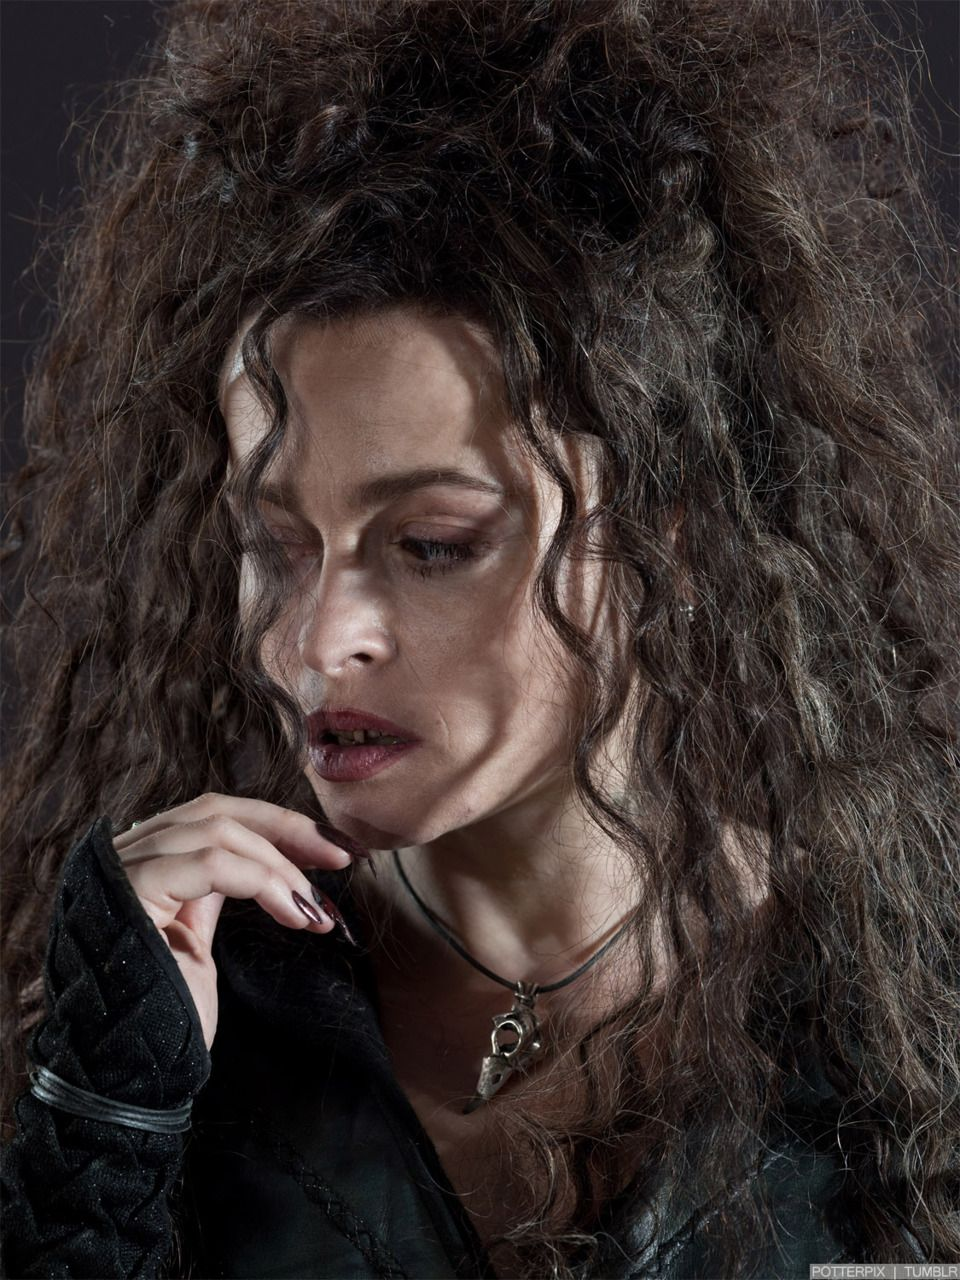 bellatrix lestrange actress